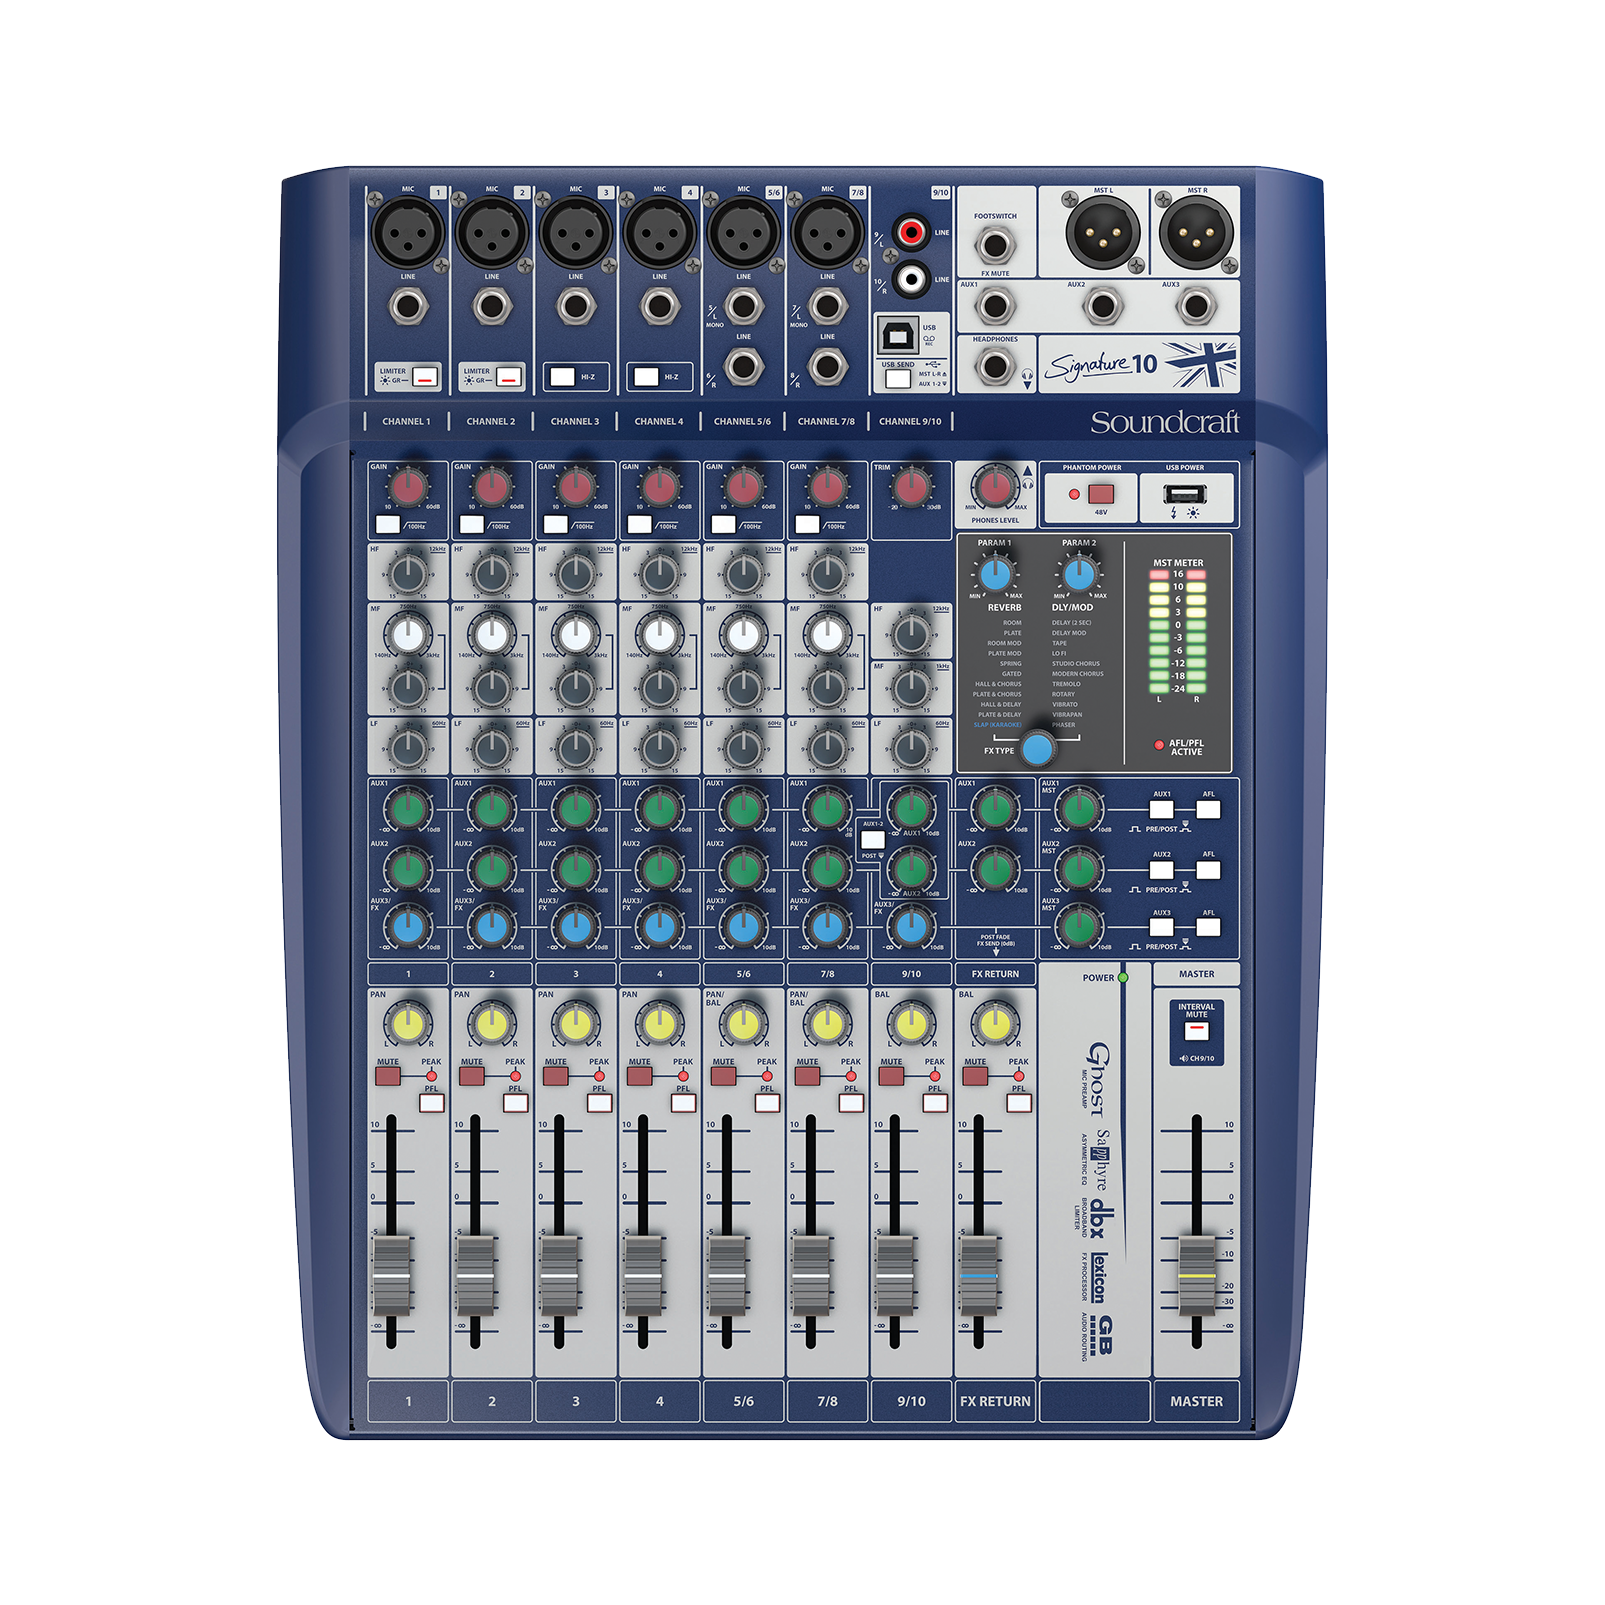 Signature 10 - Dark Blue - 10-input small format analogue mixer with onboard effects - Front